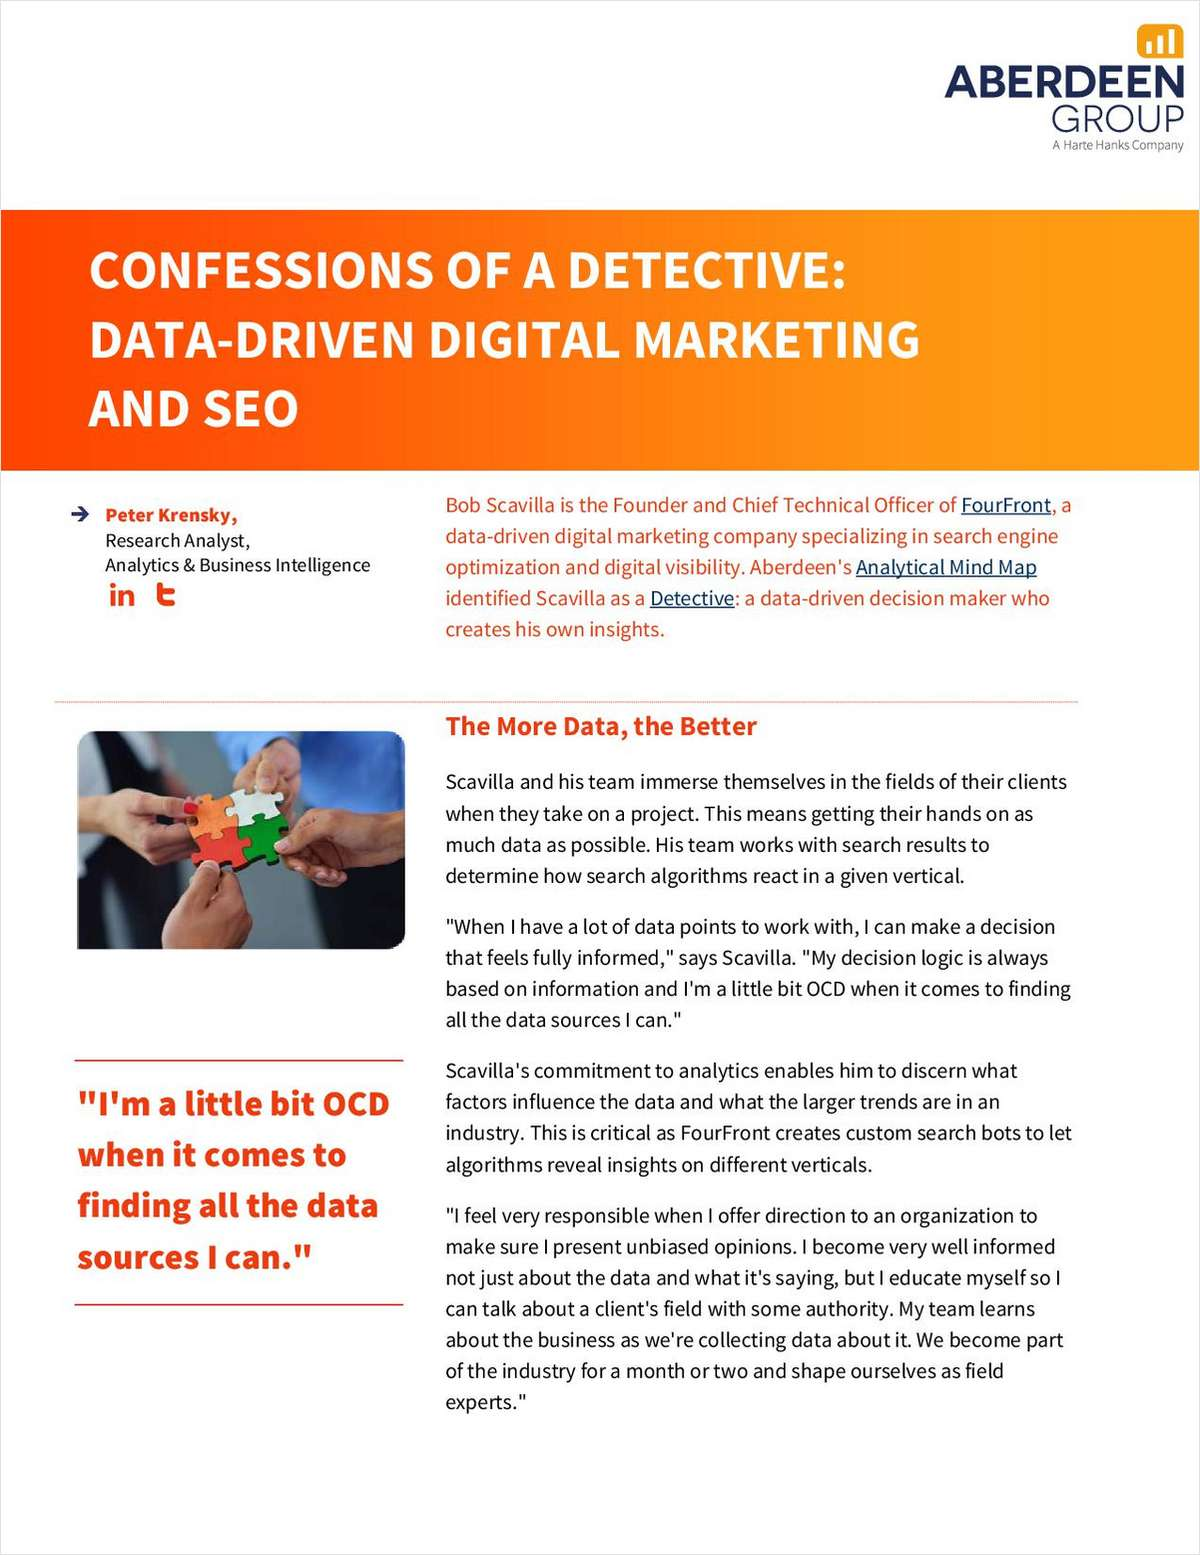 Confessions of a Detective: Data-Driven Digital Marketing and SEO